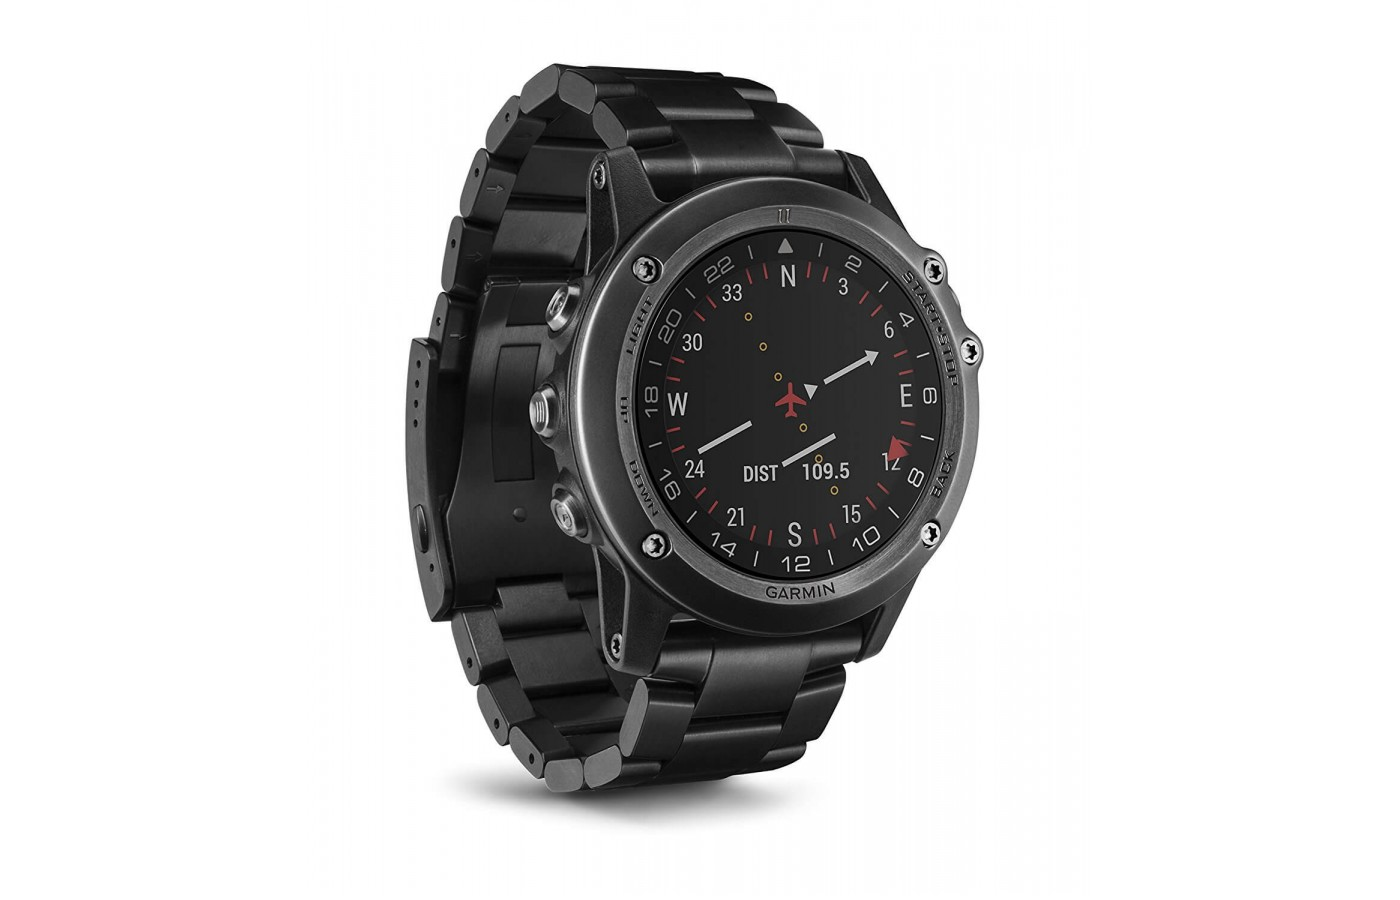 The Garmin D2 Bravo features multi-sport tracking